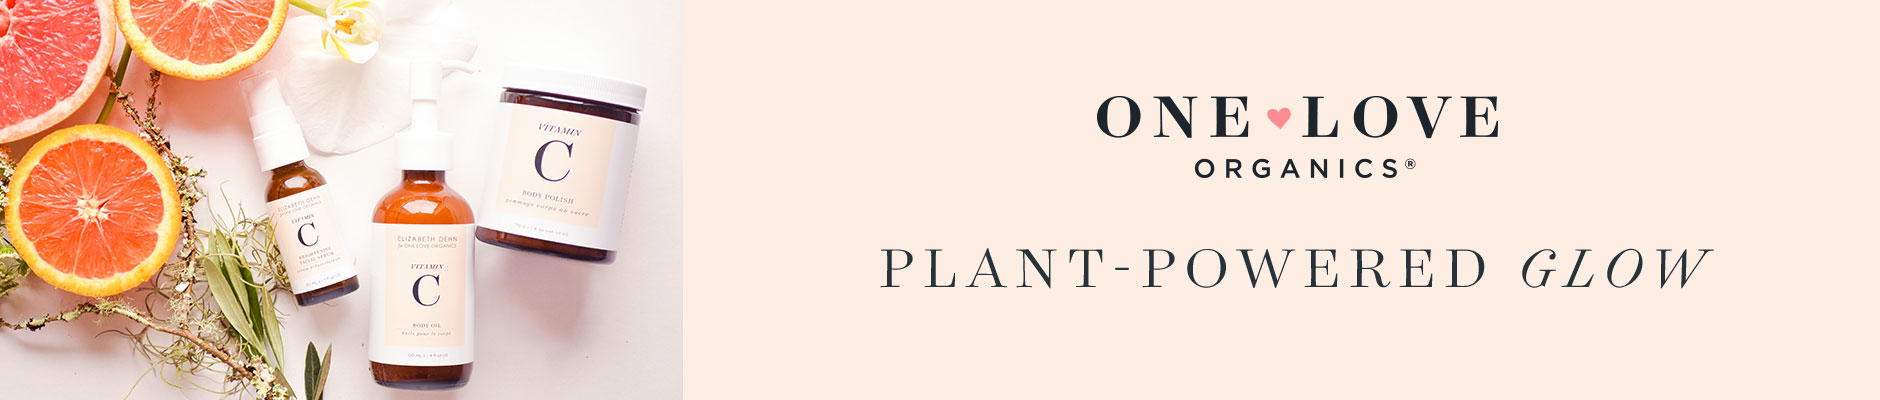 One Love Organics - Plant-powered glow